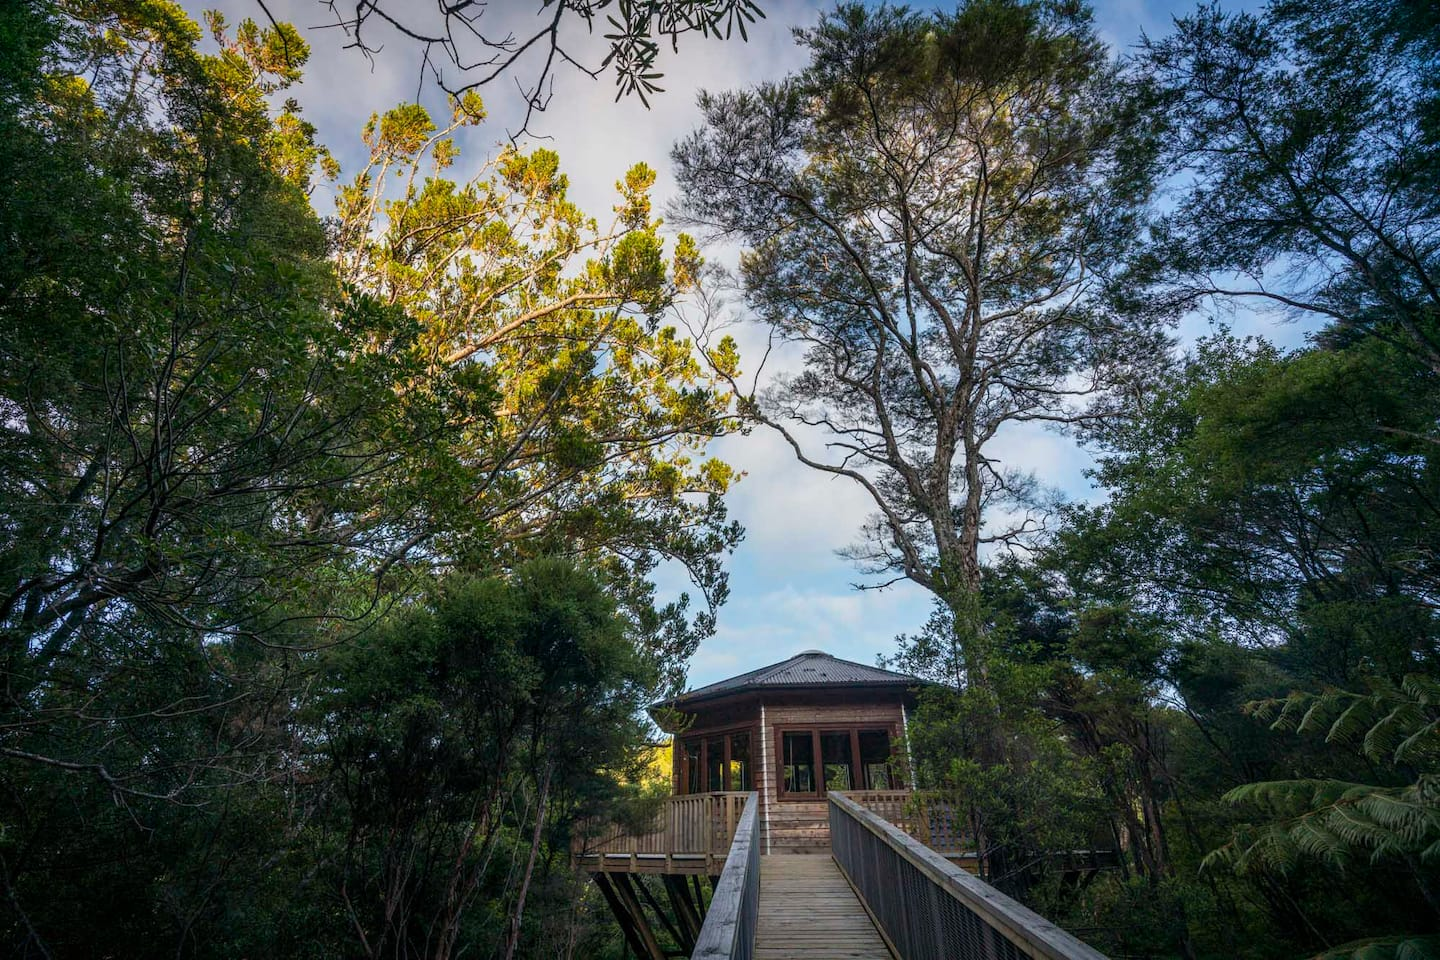 AWAY Treehouse - Airbnb New Zealand